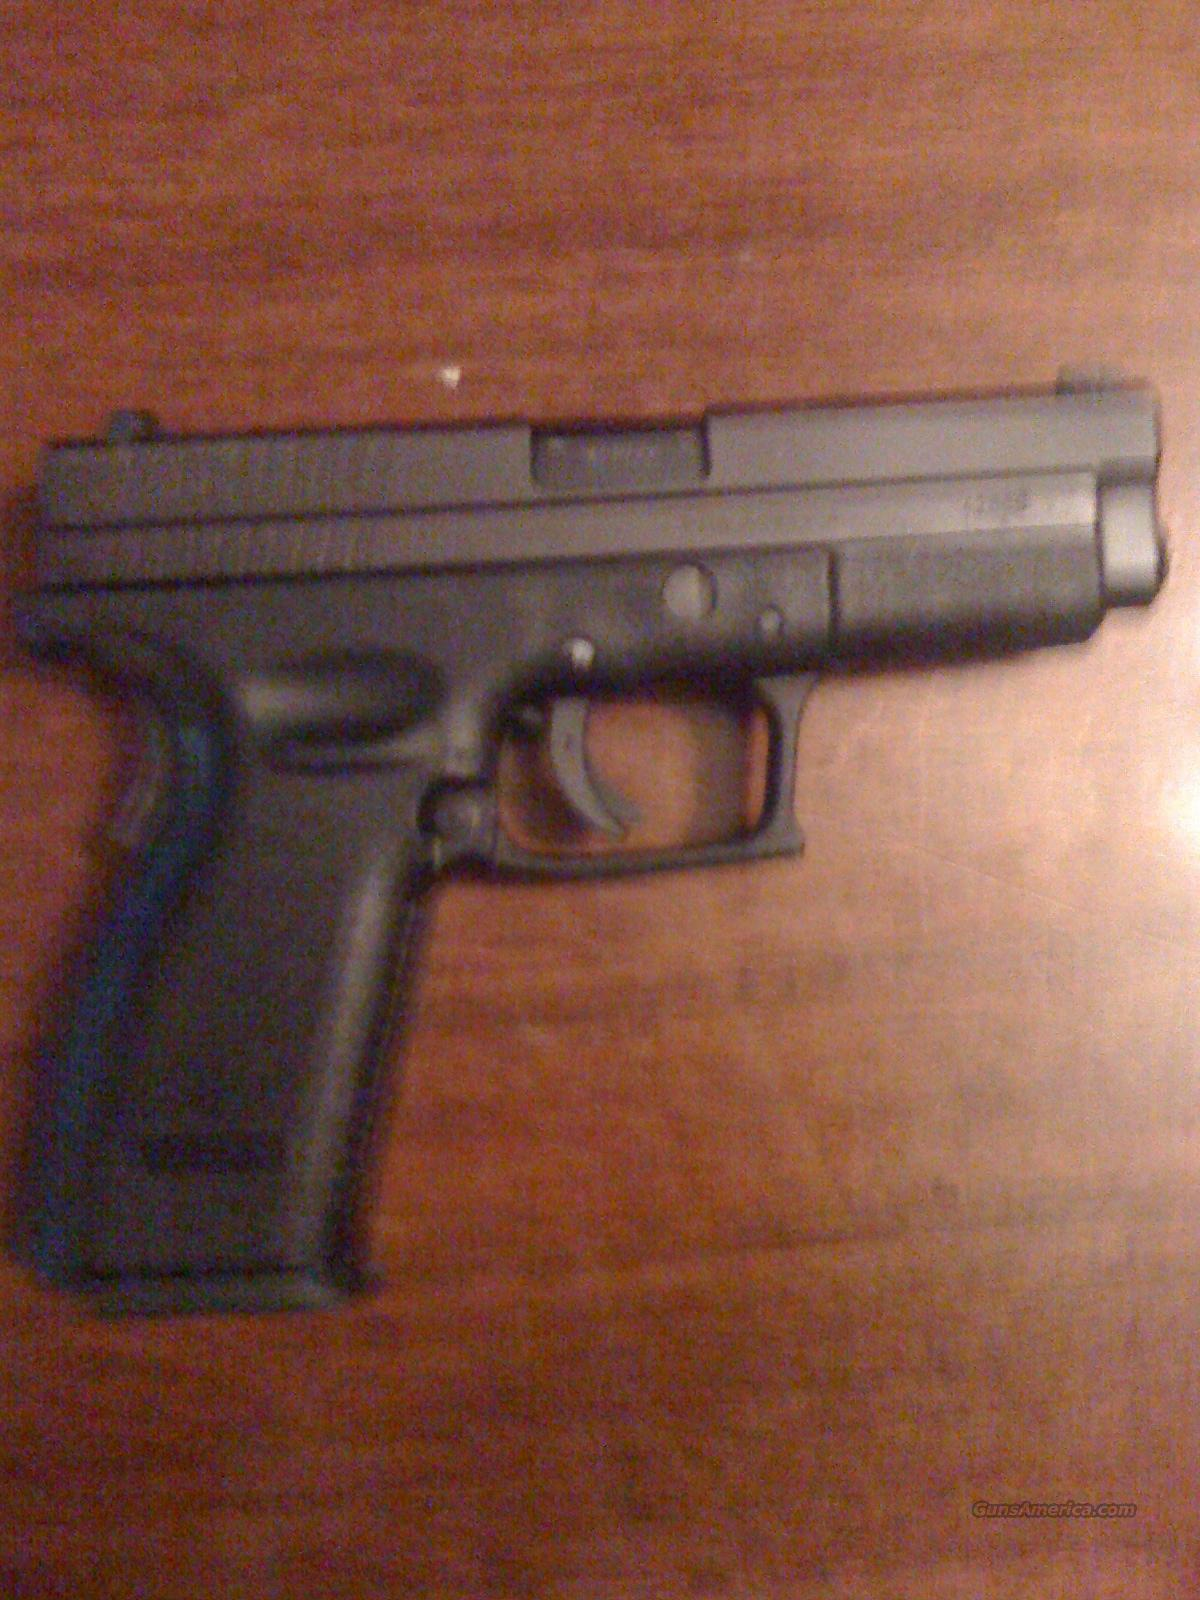 Springfield XD 9mm with Night Sights and 2 hi-cap mags  Guns > Pistols > Springfield Armory Pistols > XD (eXtreme Duty)